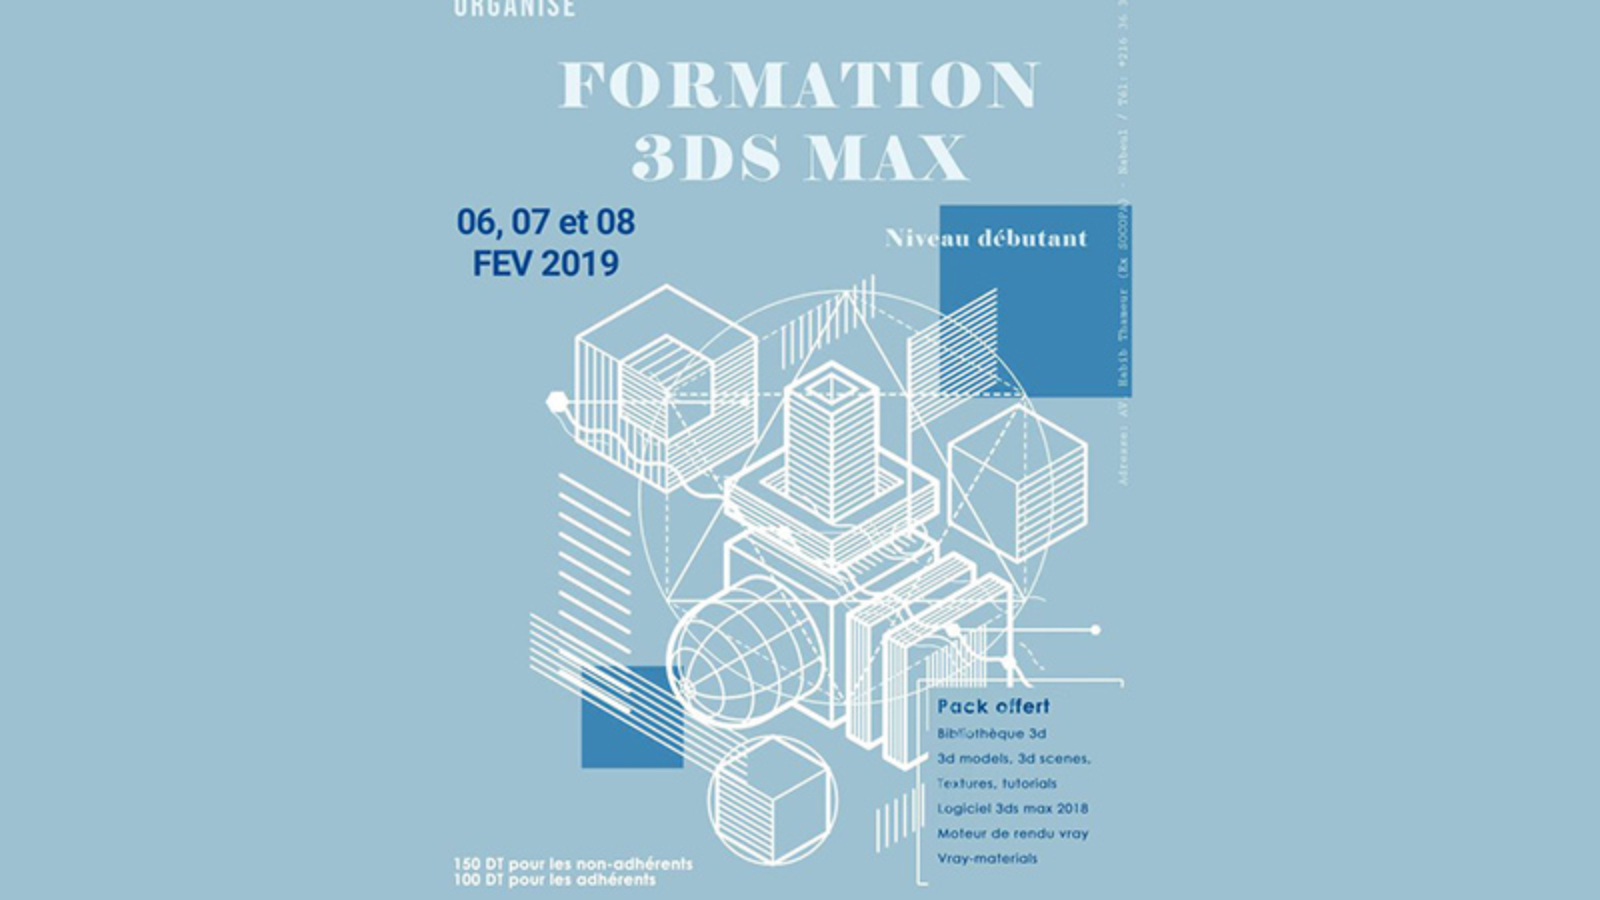 Formation-3Ds-MAX